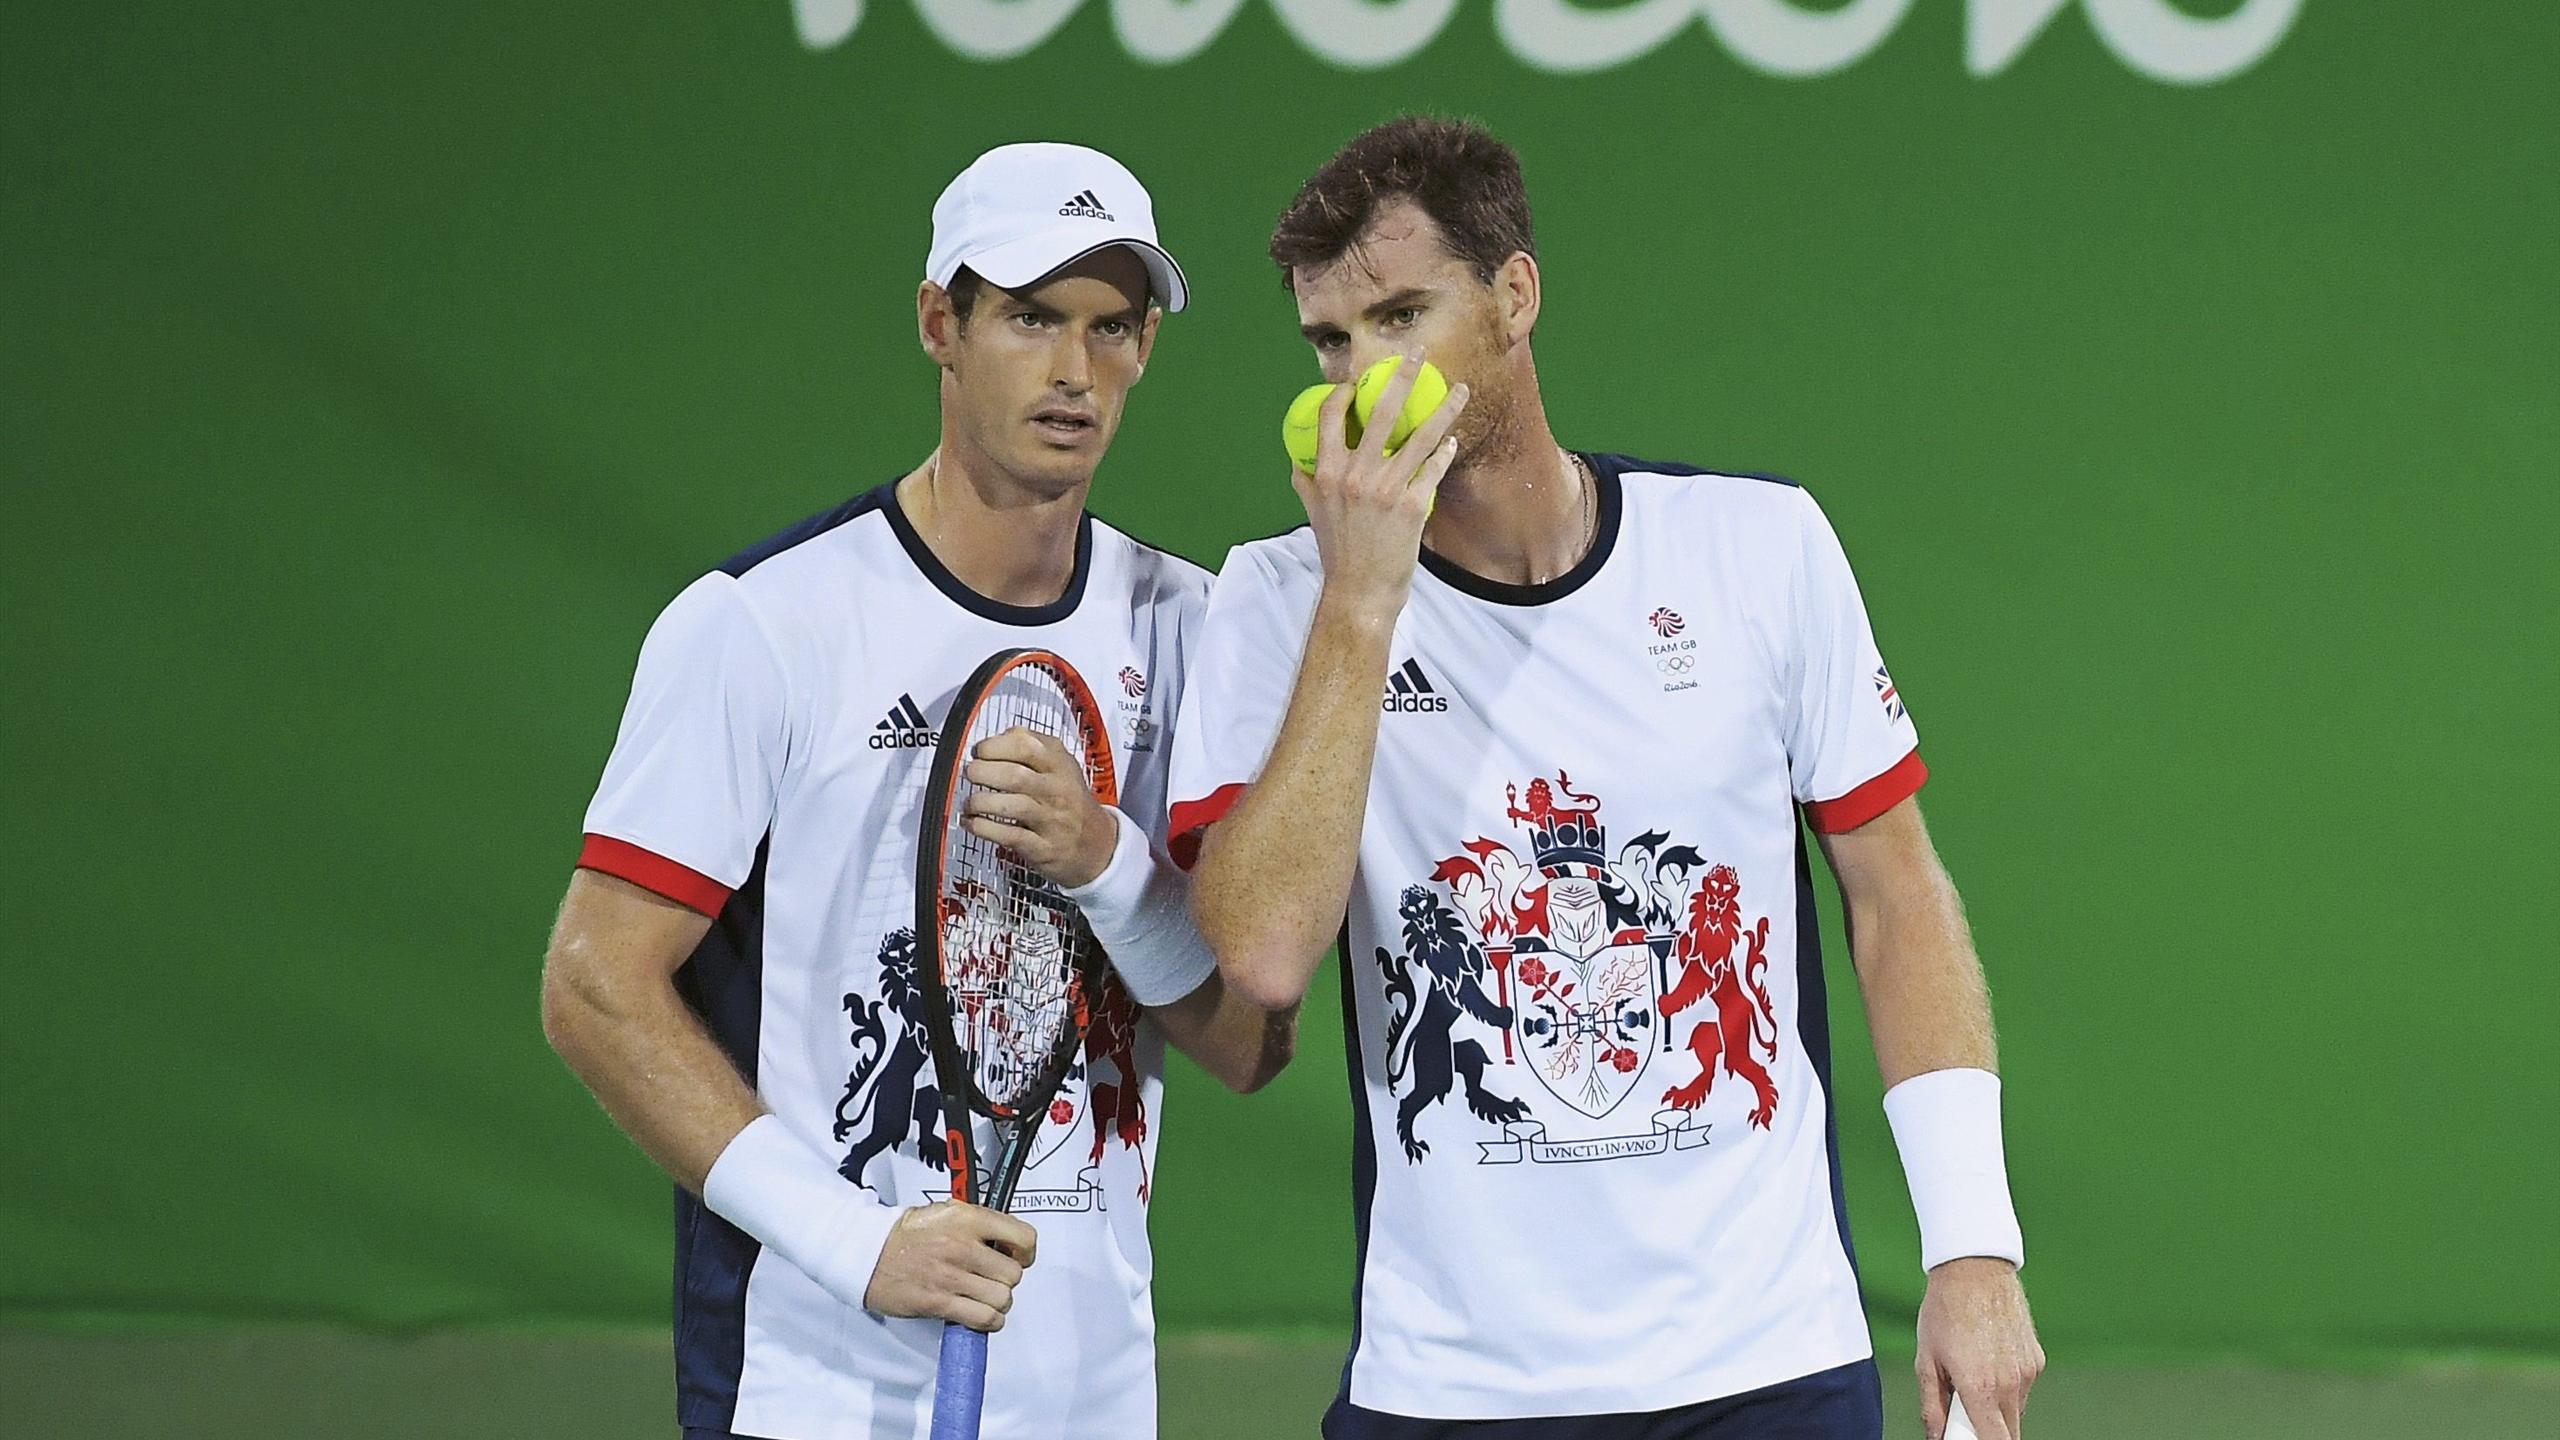 Andy Murray (GBR) of United Kingdom and Jamie Murray (GBR) of United Kingdom are seen during their match against Thomaz Bellucci (BRA) of Brazil and Andre Sa (BRA) of Brazil